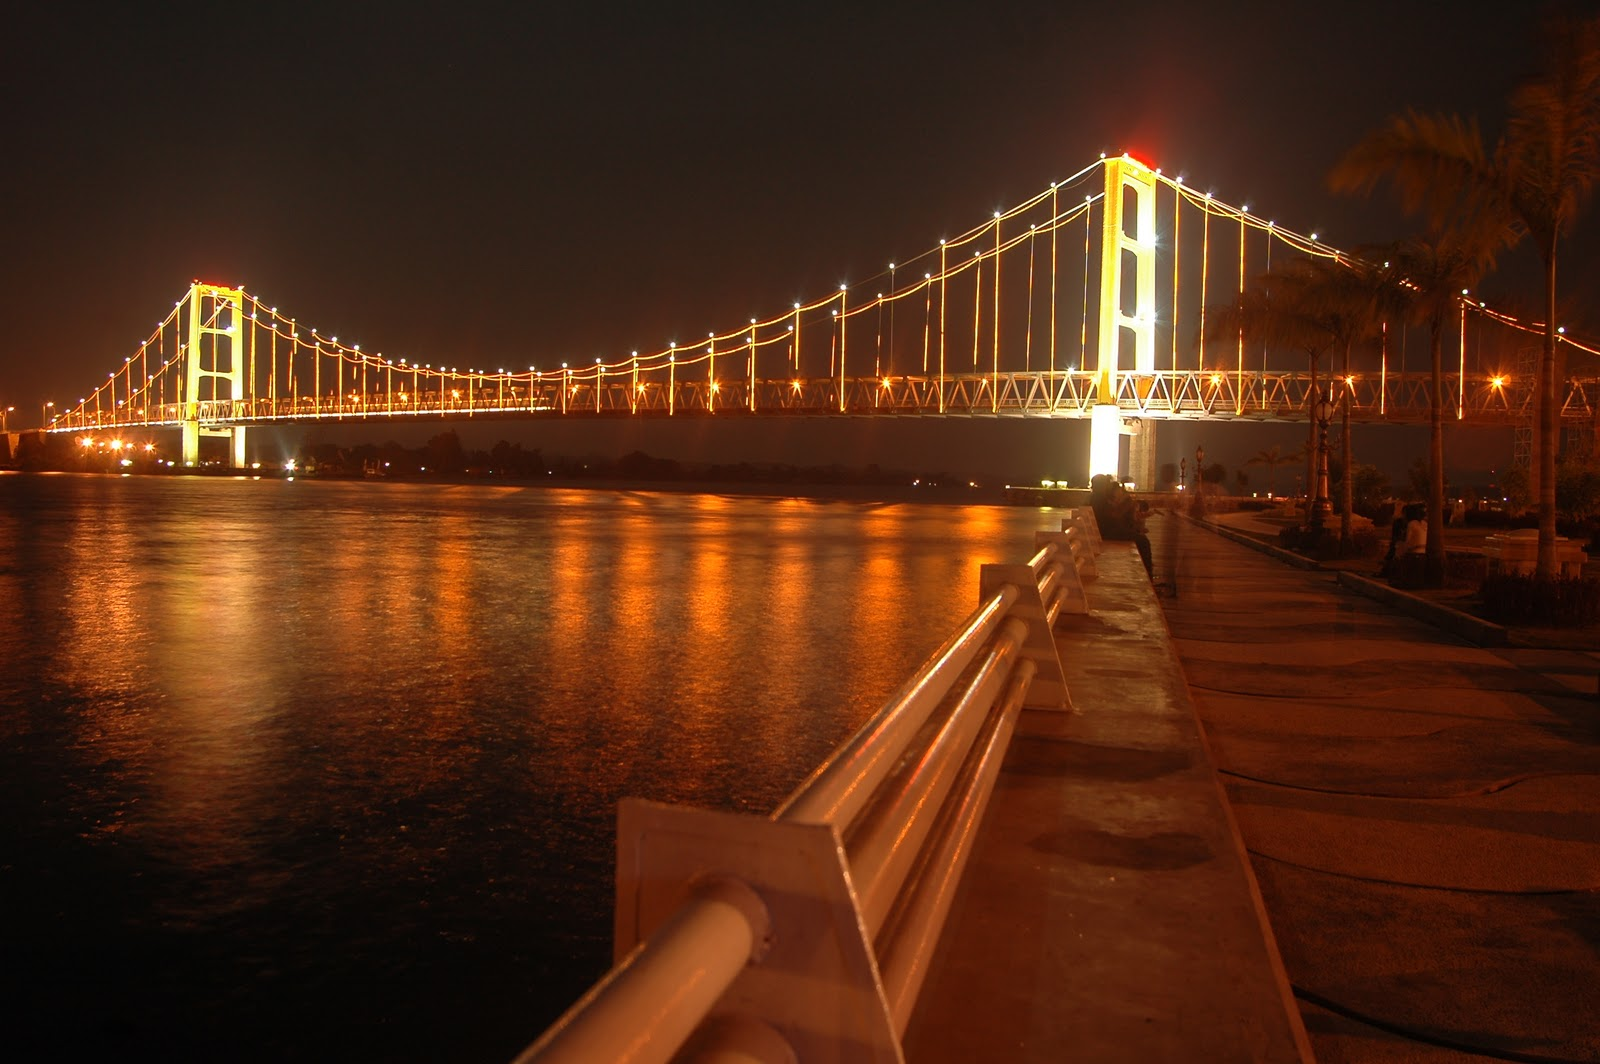 PAGUNTAKA CITY IN MEDIA JEMBATAN TENGGARONG RUNTUH KLIK